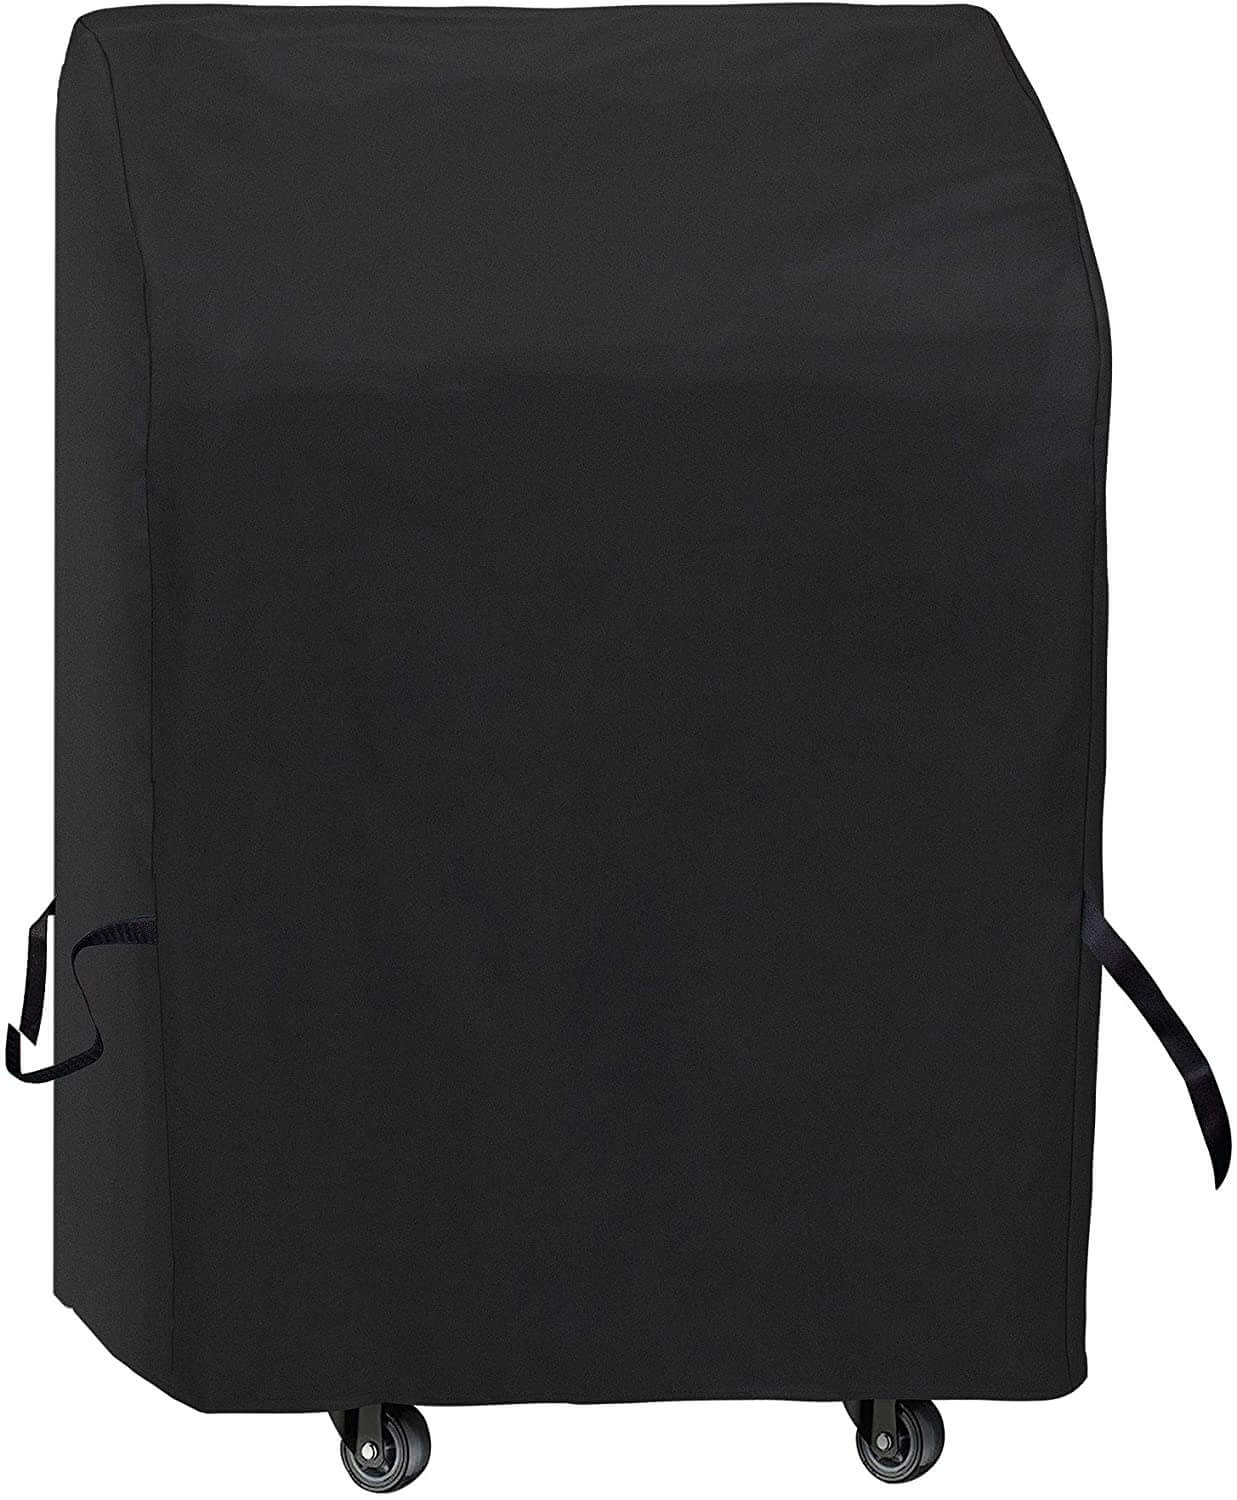 iCOVER Grill Cover